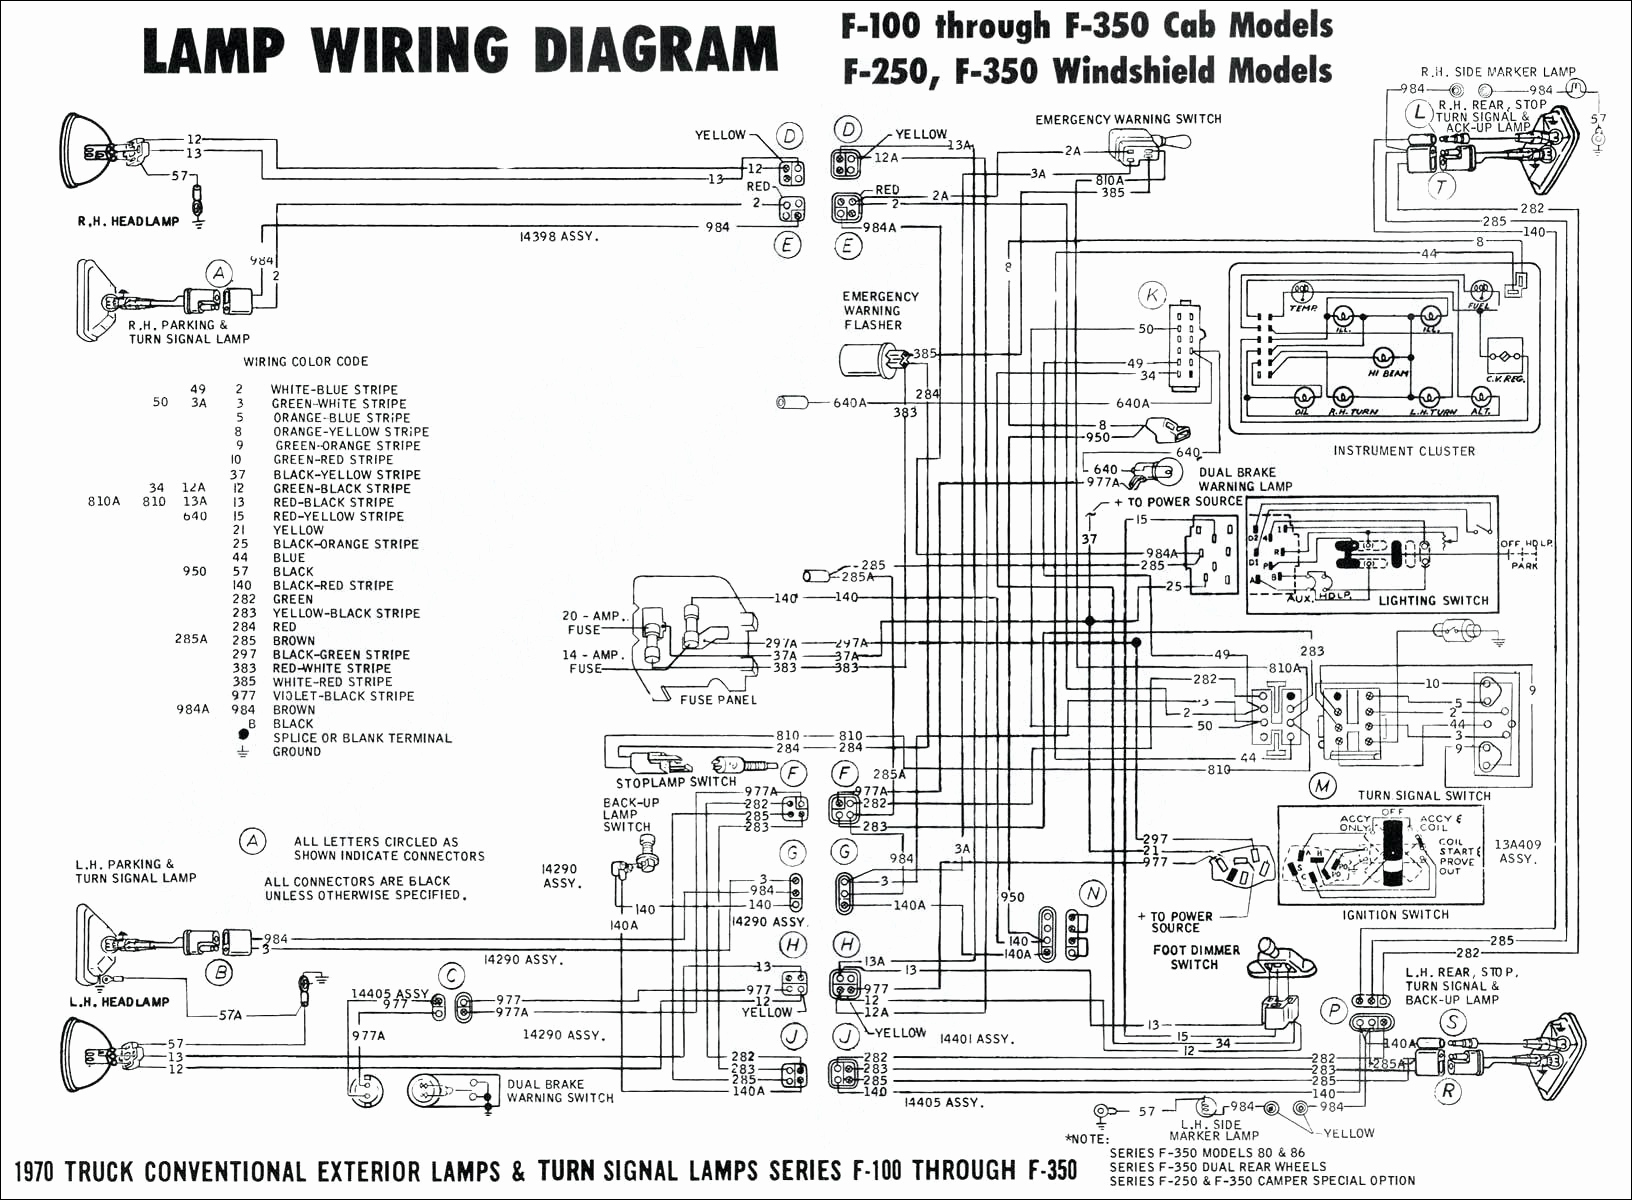 7A1BA4 Turf Master Riding Mower Wiring Diagram | Wiring ... on john deere 112 wiring-diagram, john deere 314 wiring-diagram, cub cadet lawn tractor wiring diagram, john deere tractor wiring schematics, kohler electrical diagram, john deere l120 wiring diagram, john deere 1010 tractor wiring, john deere lawn mower charging diagram, john deere ignition switch diagram,